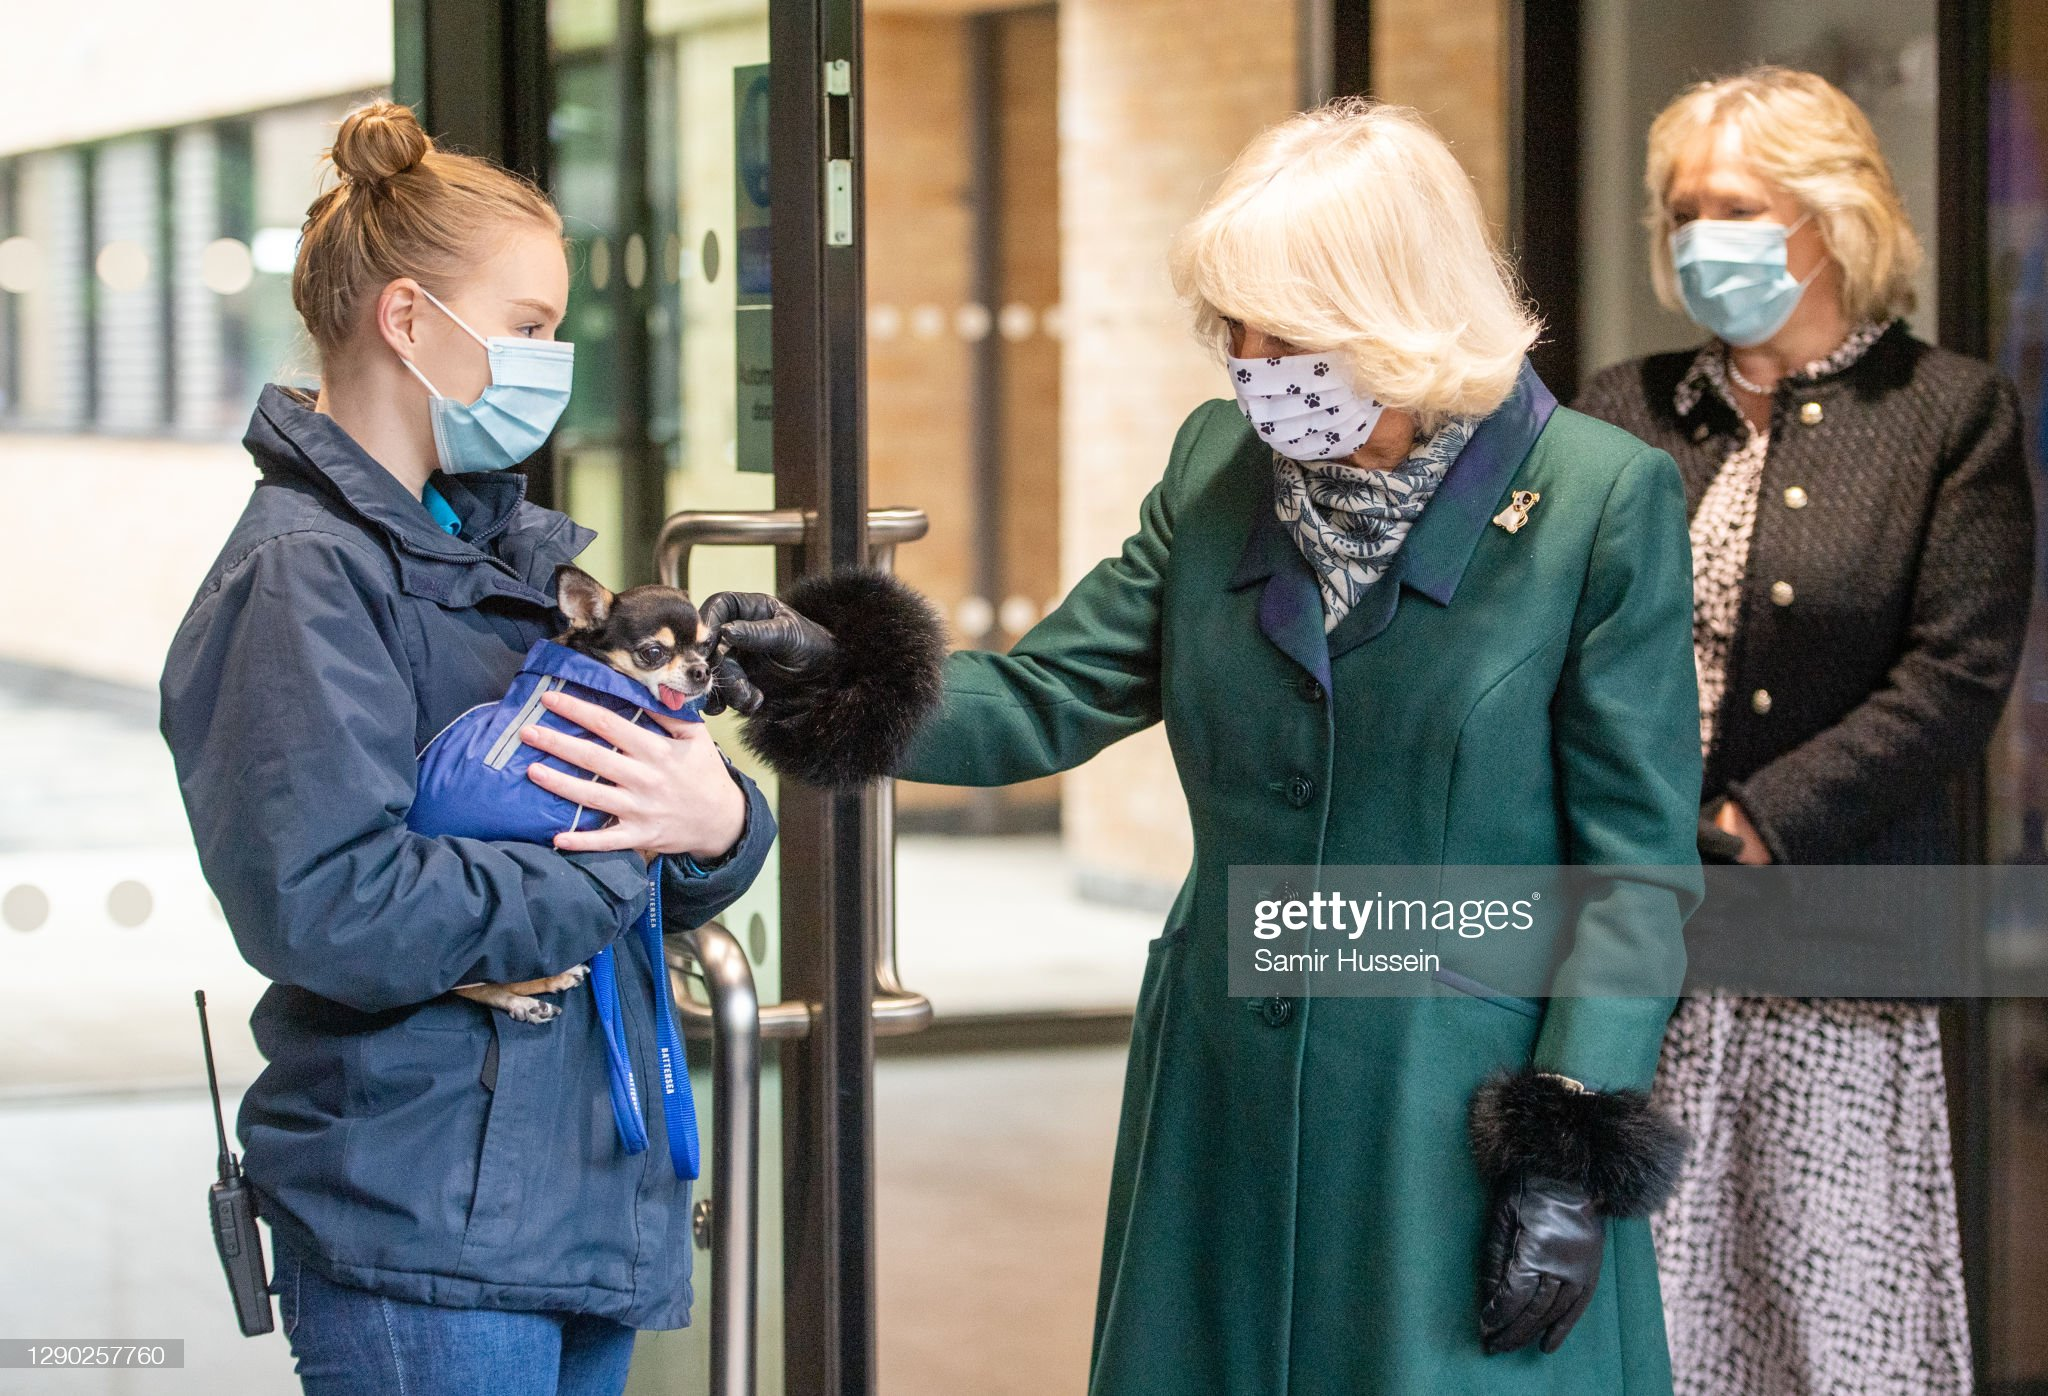 camilla-duchess-of-cornwall-visits-battersea-dogs-home-in-windsor-on-picture-id1290257760